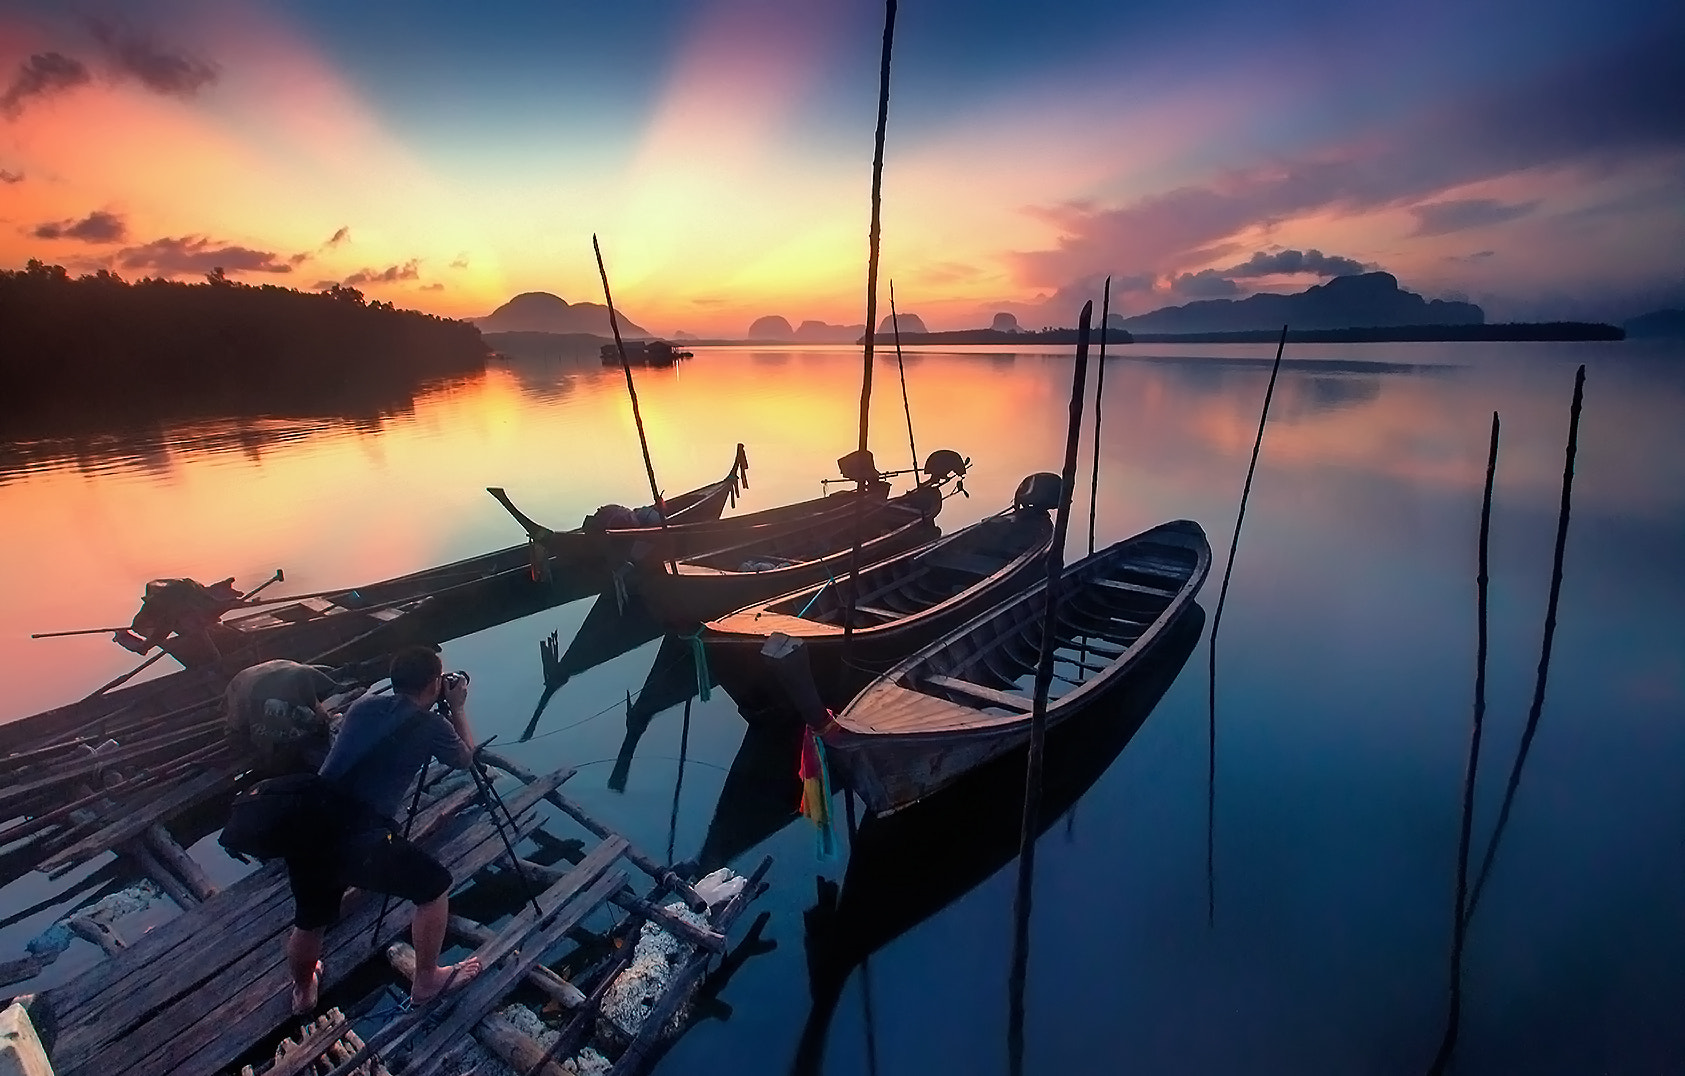 Photograph Into the new day by Wazabi Bomb  on 500px